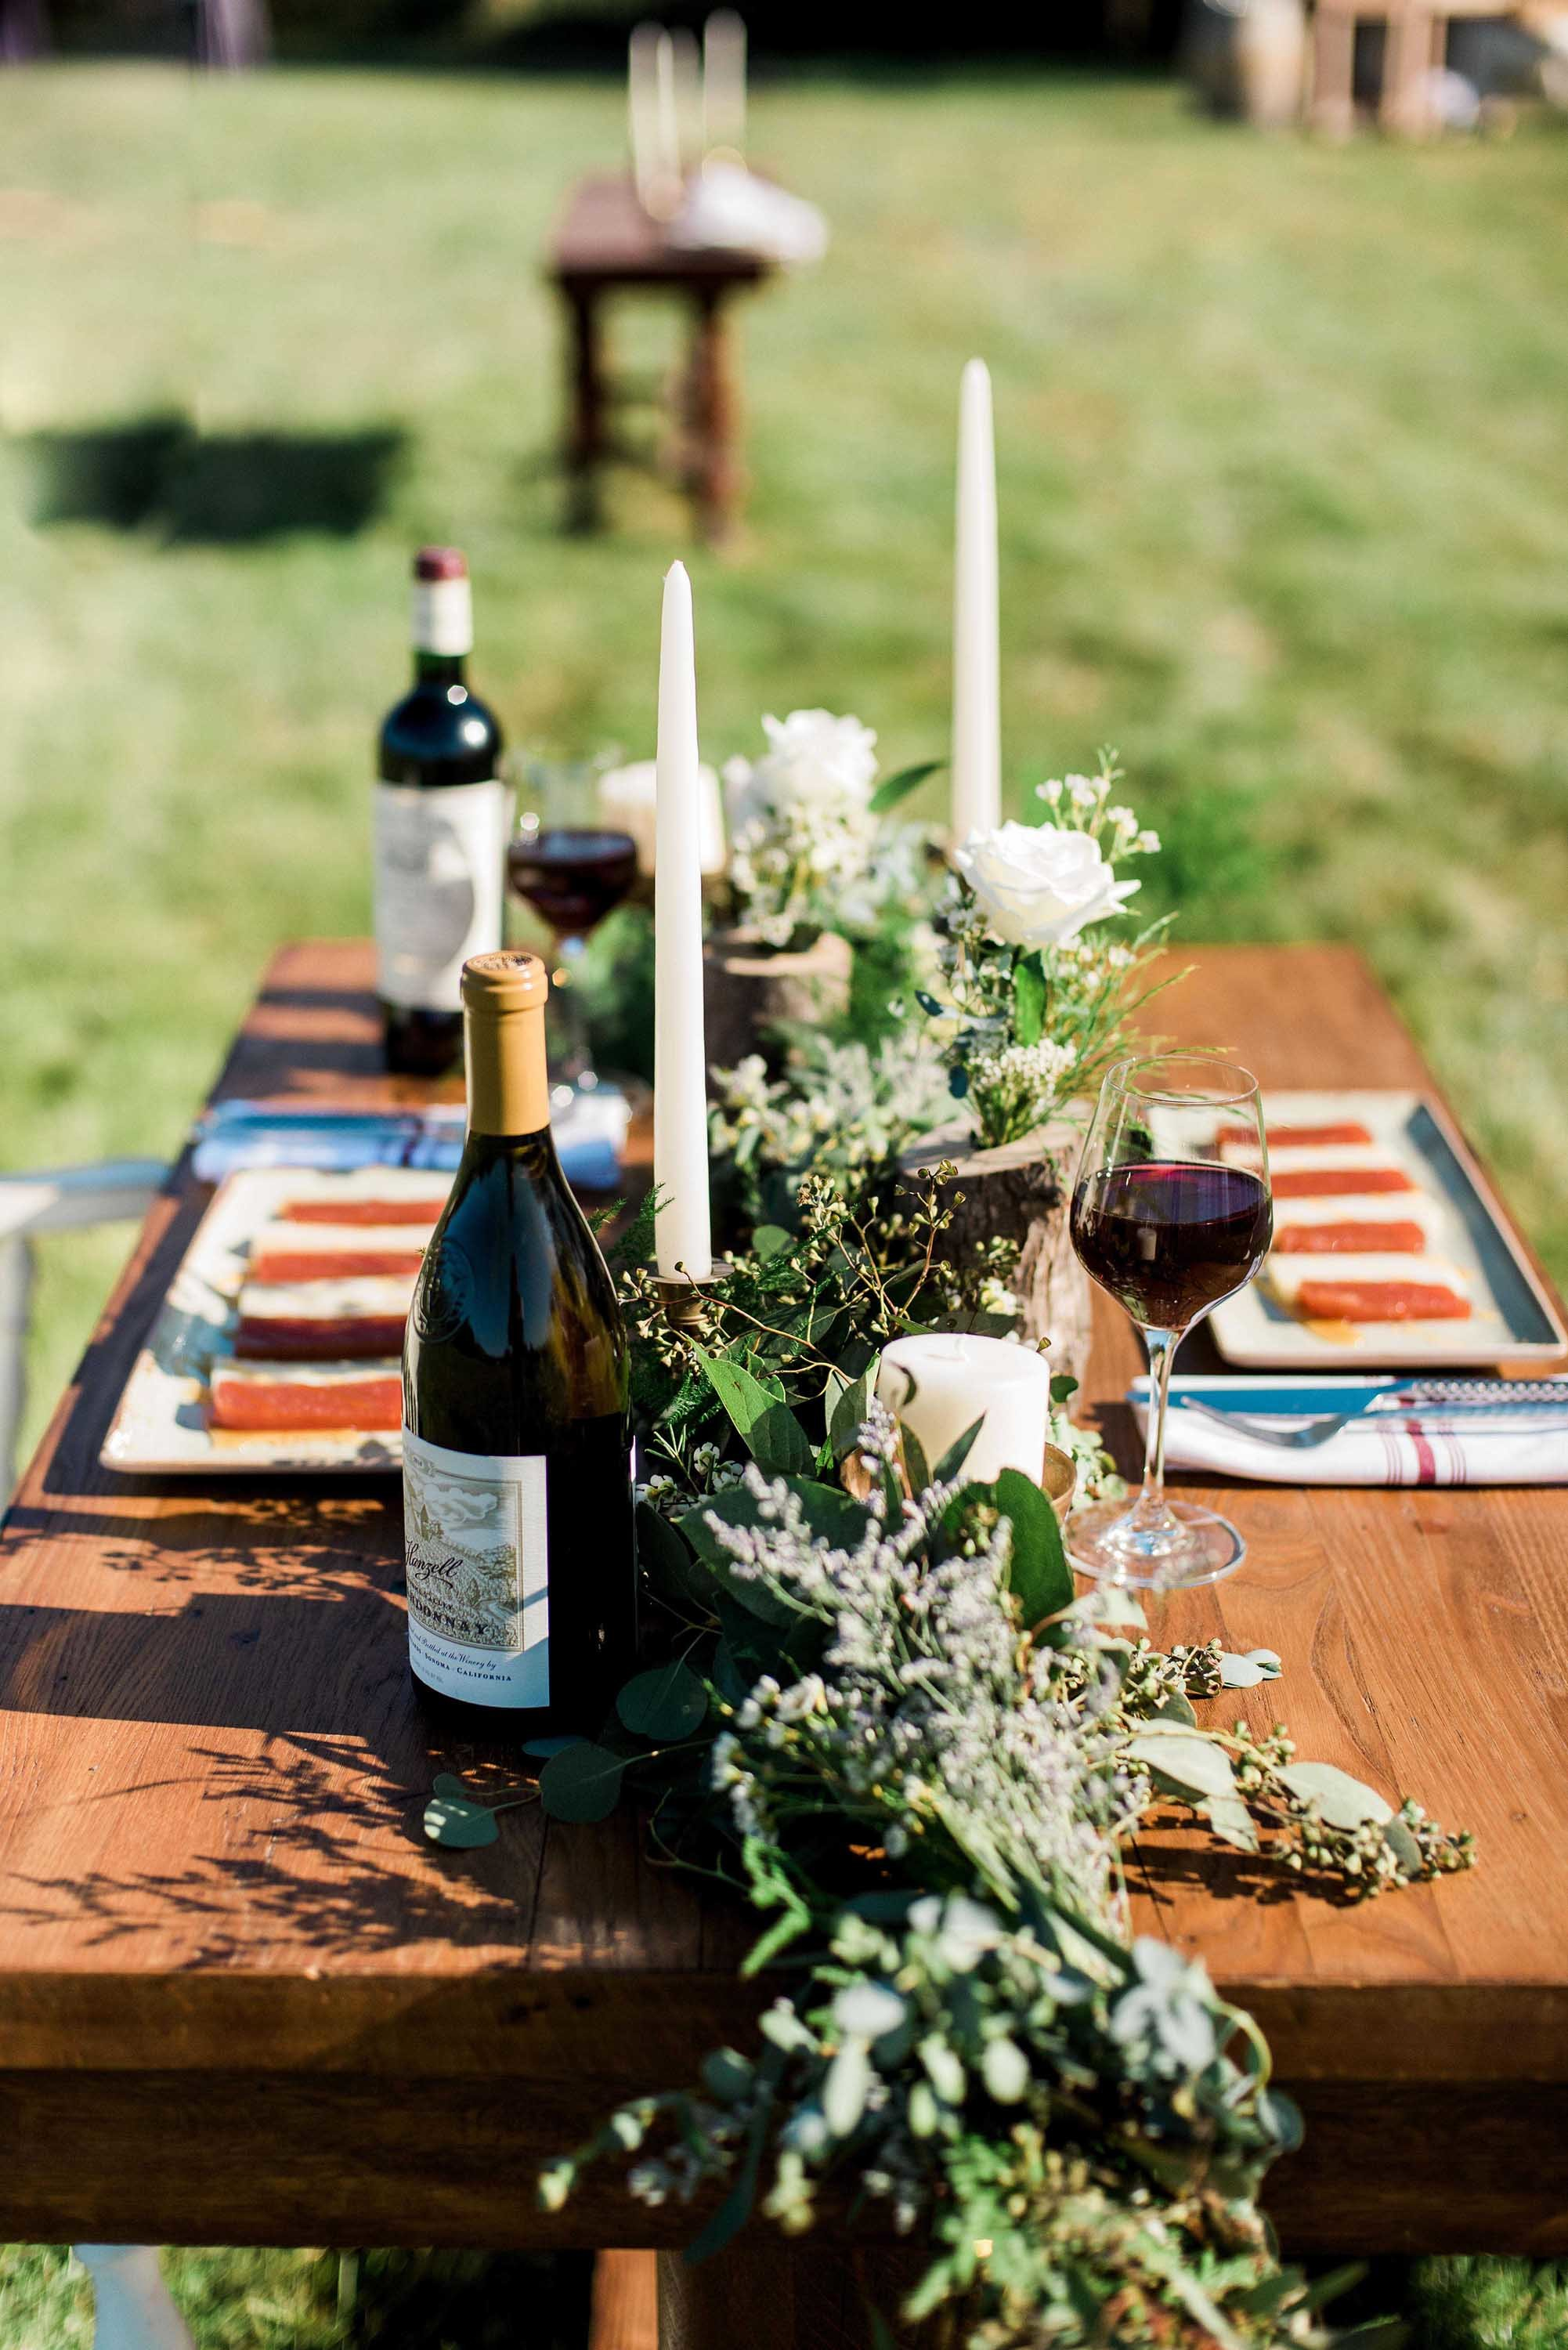 Wooden Tables with wine